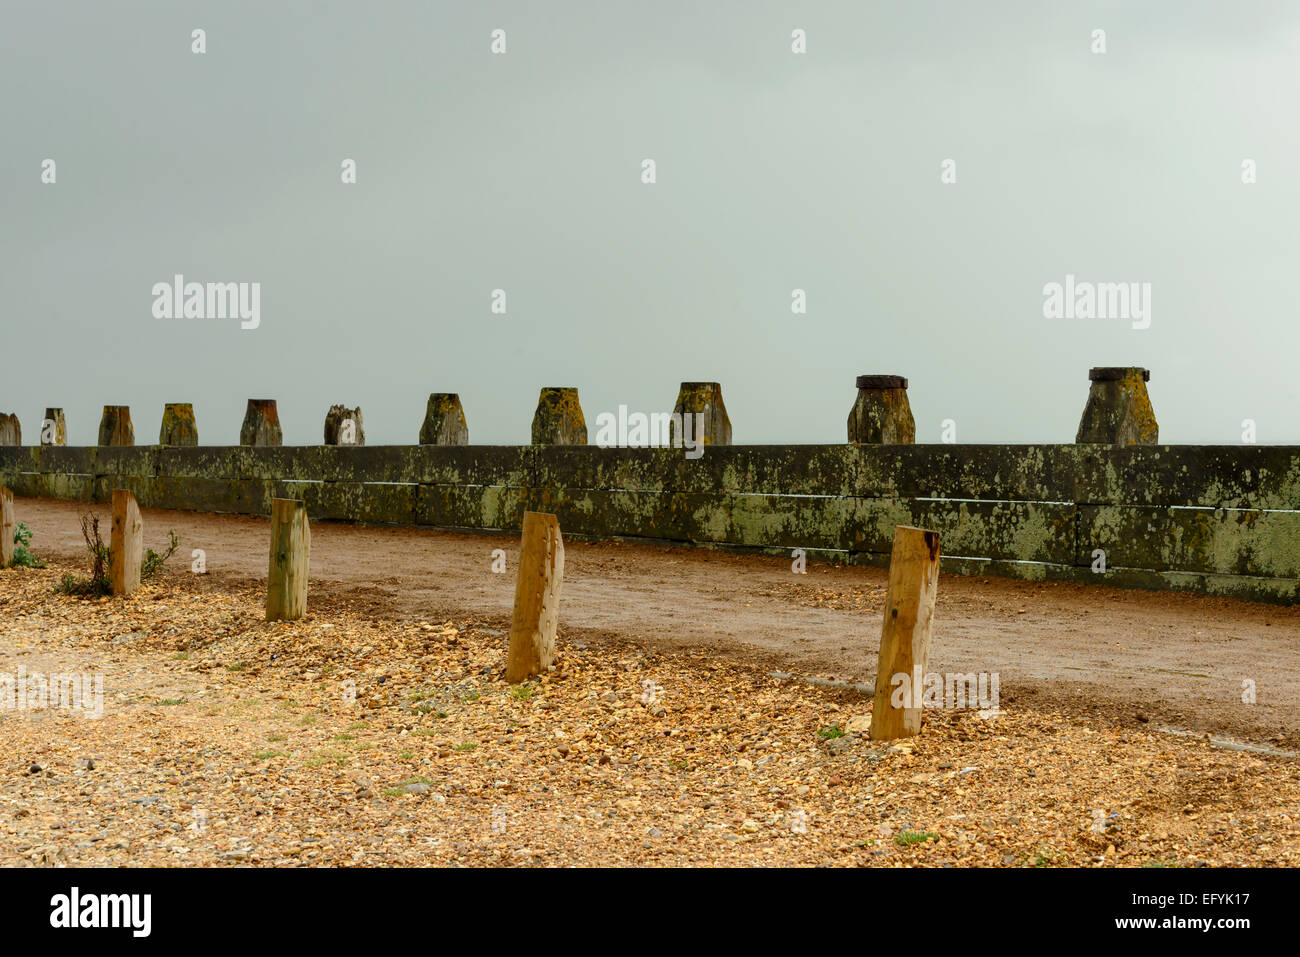 detail of foot path delimitation at shingle beach of touristic location, shot under bright cloudy sky - Stock Image